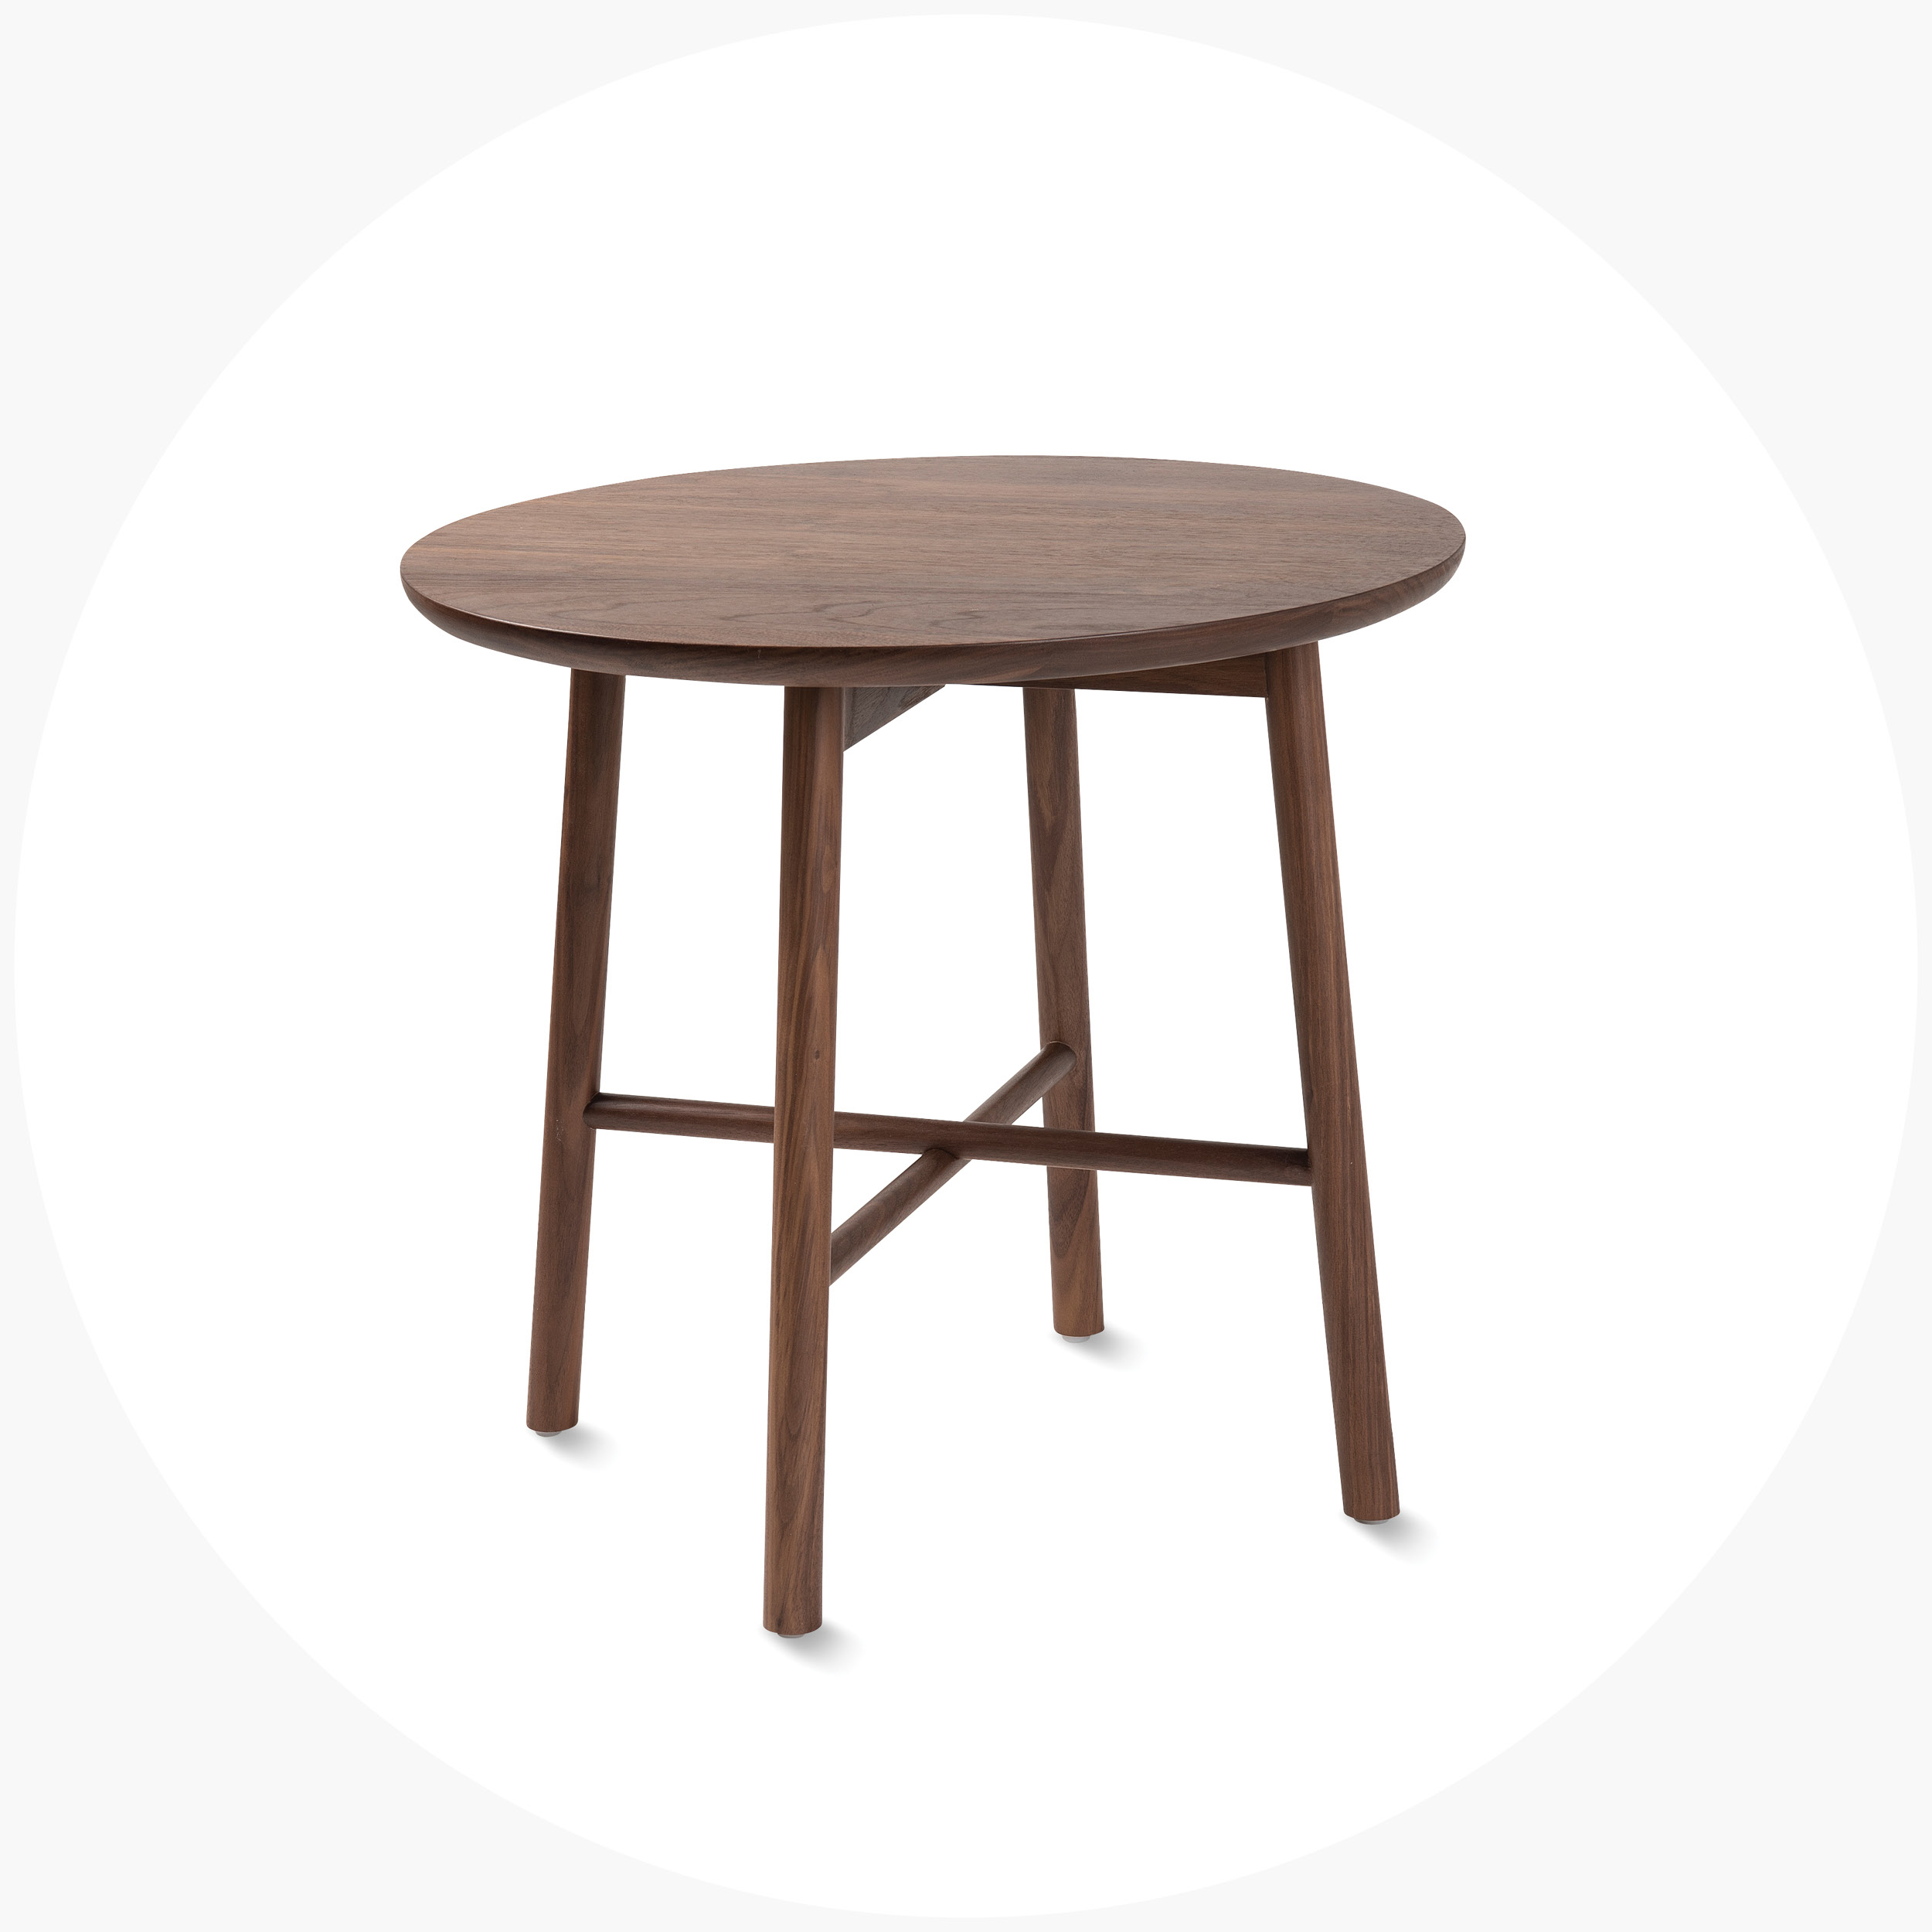 Radial Round Side Table  $590.00